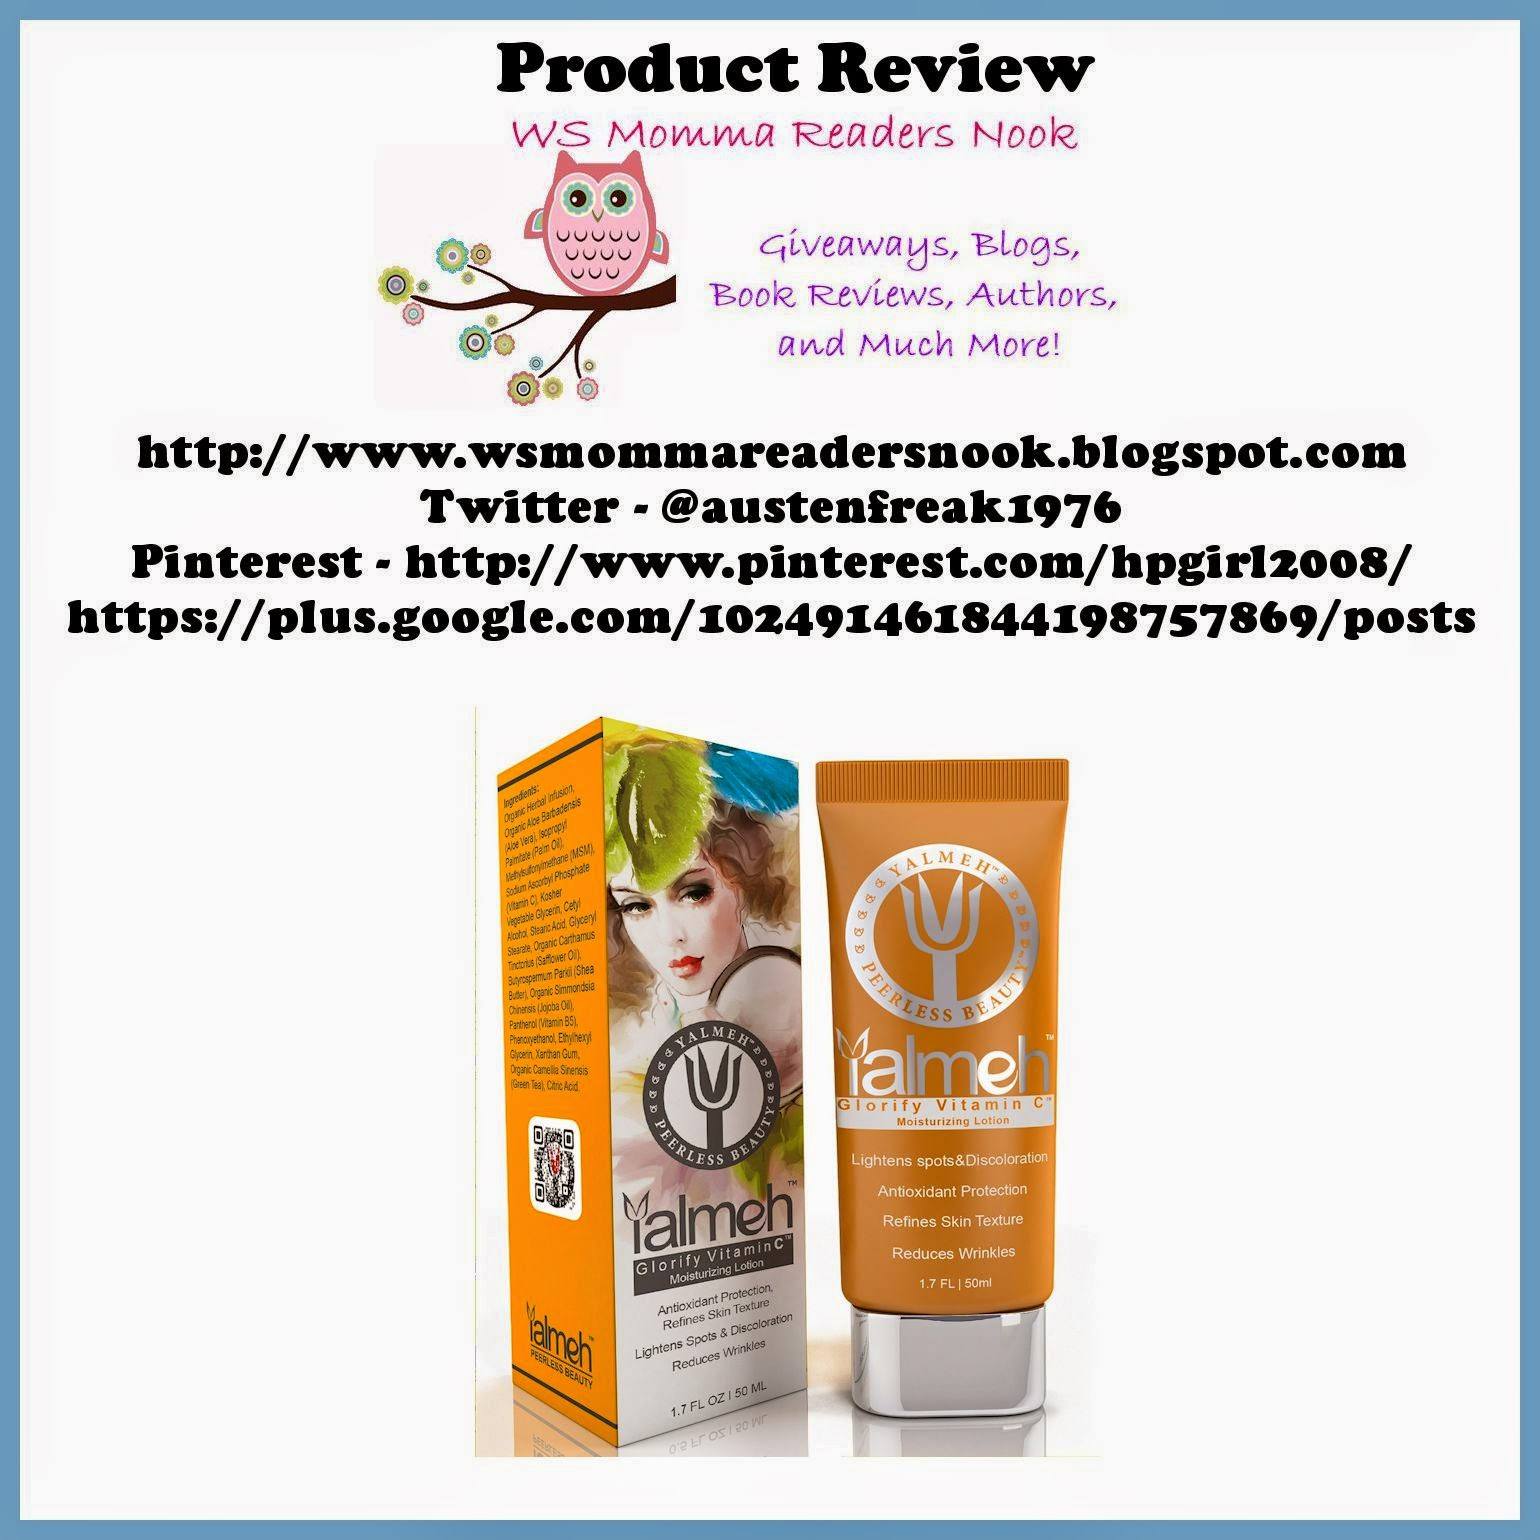 http://www.amazon.com/moisturizing-moisturizer-lightweight-ingredients-guaranteed/dp/b00oiee8wa/ref=sr_1_12?ie=utf8&qid=1416560782&sr=8-12&keywords=anti+aging+moisturizer